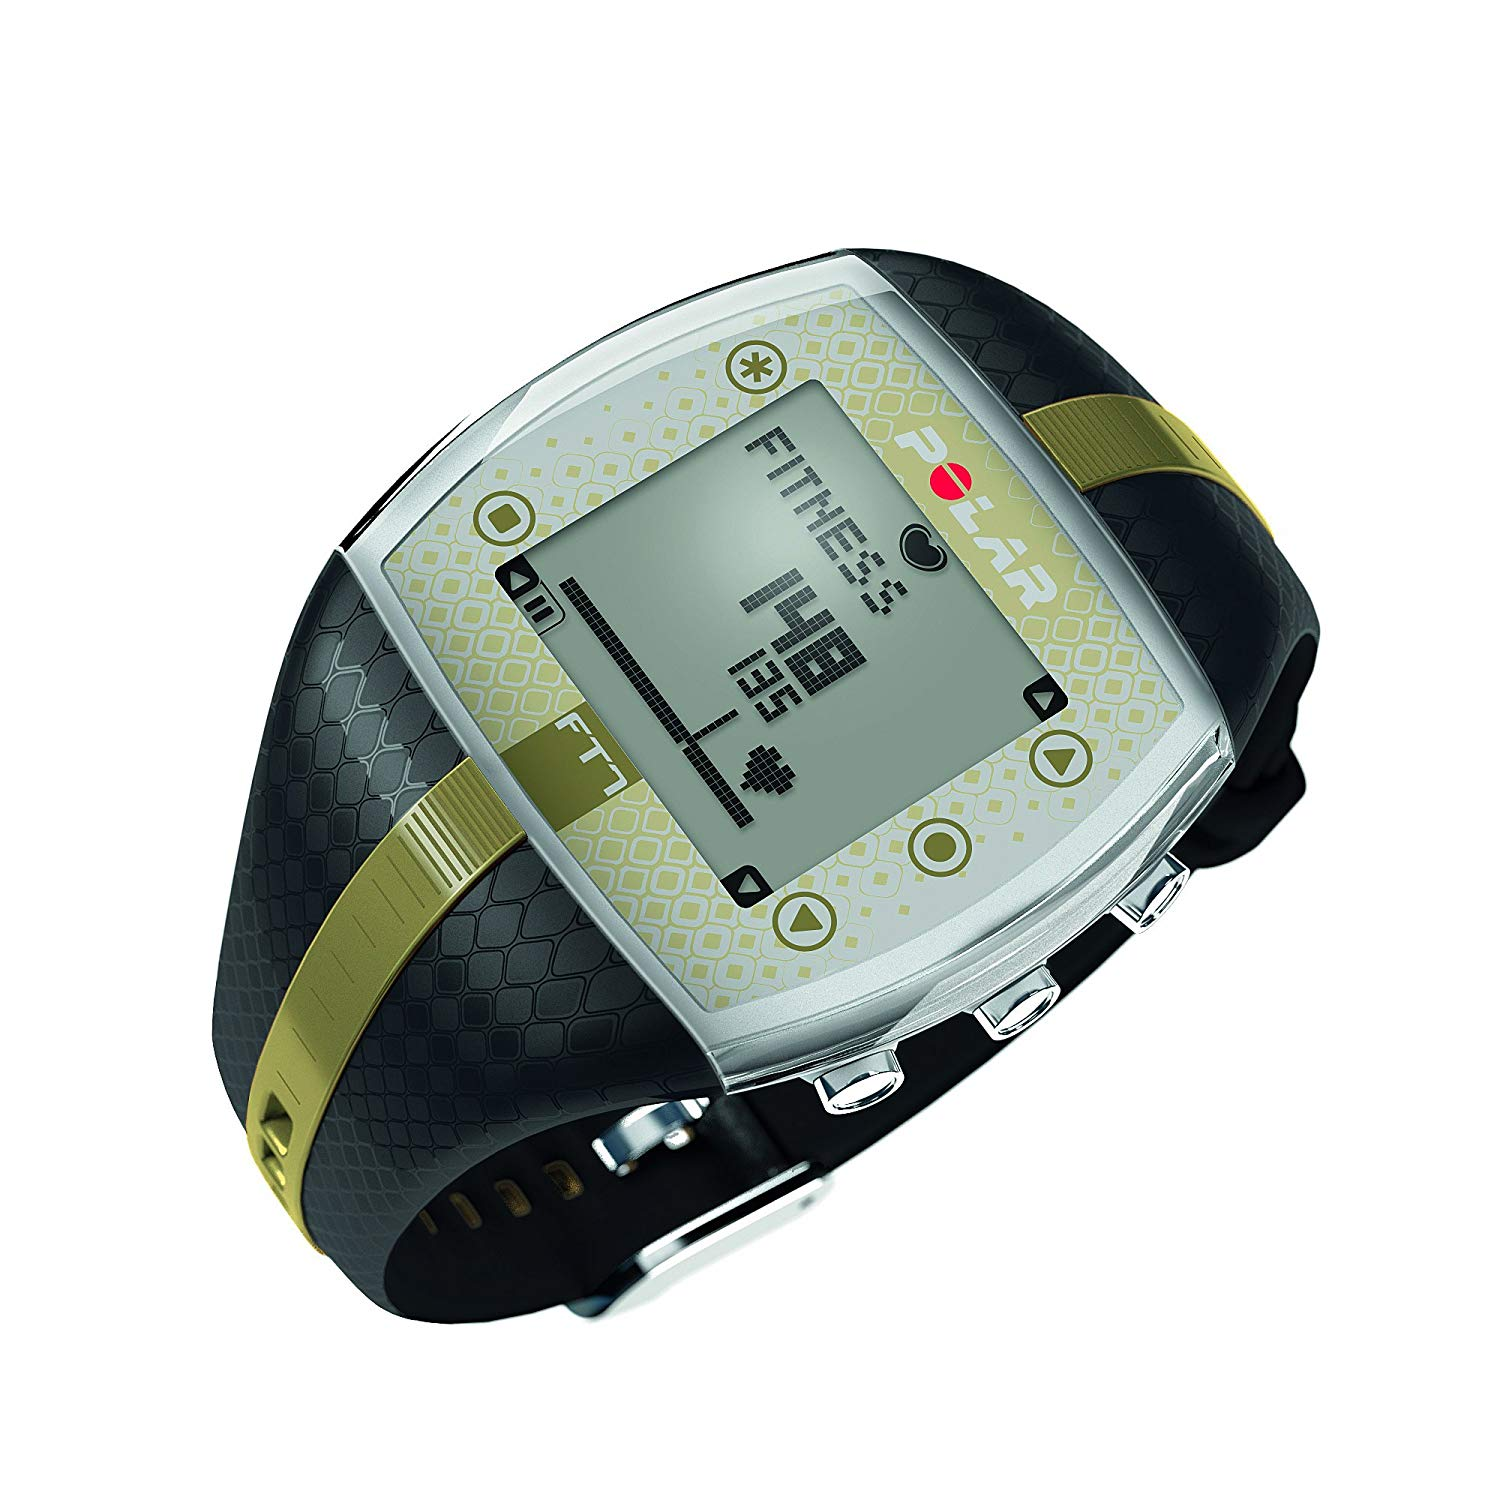 Polar Ft7 Heart Rate Monitor Review 2019 Aim Workout